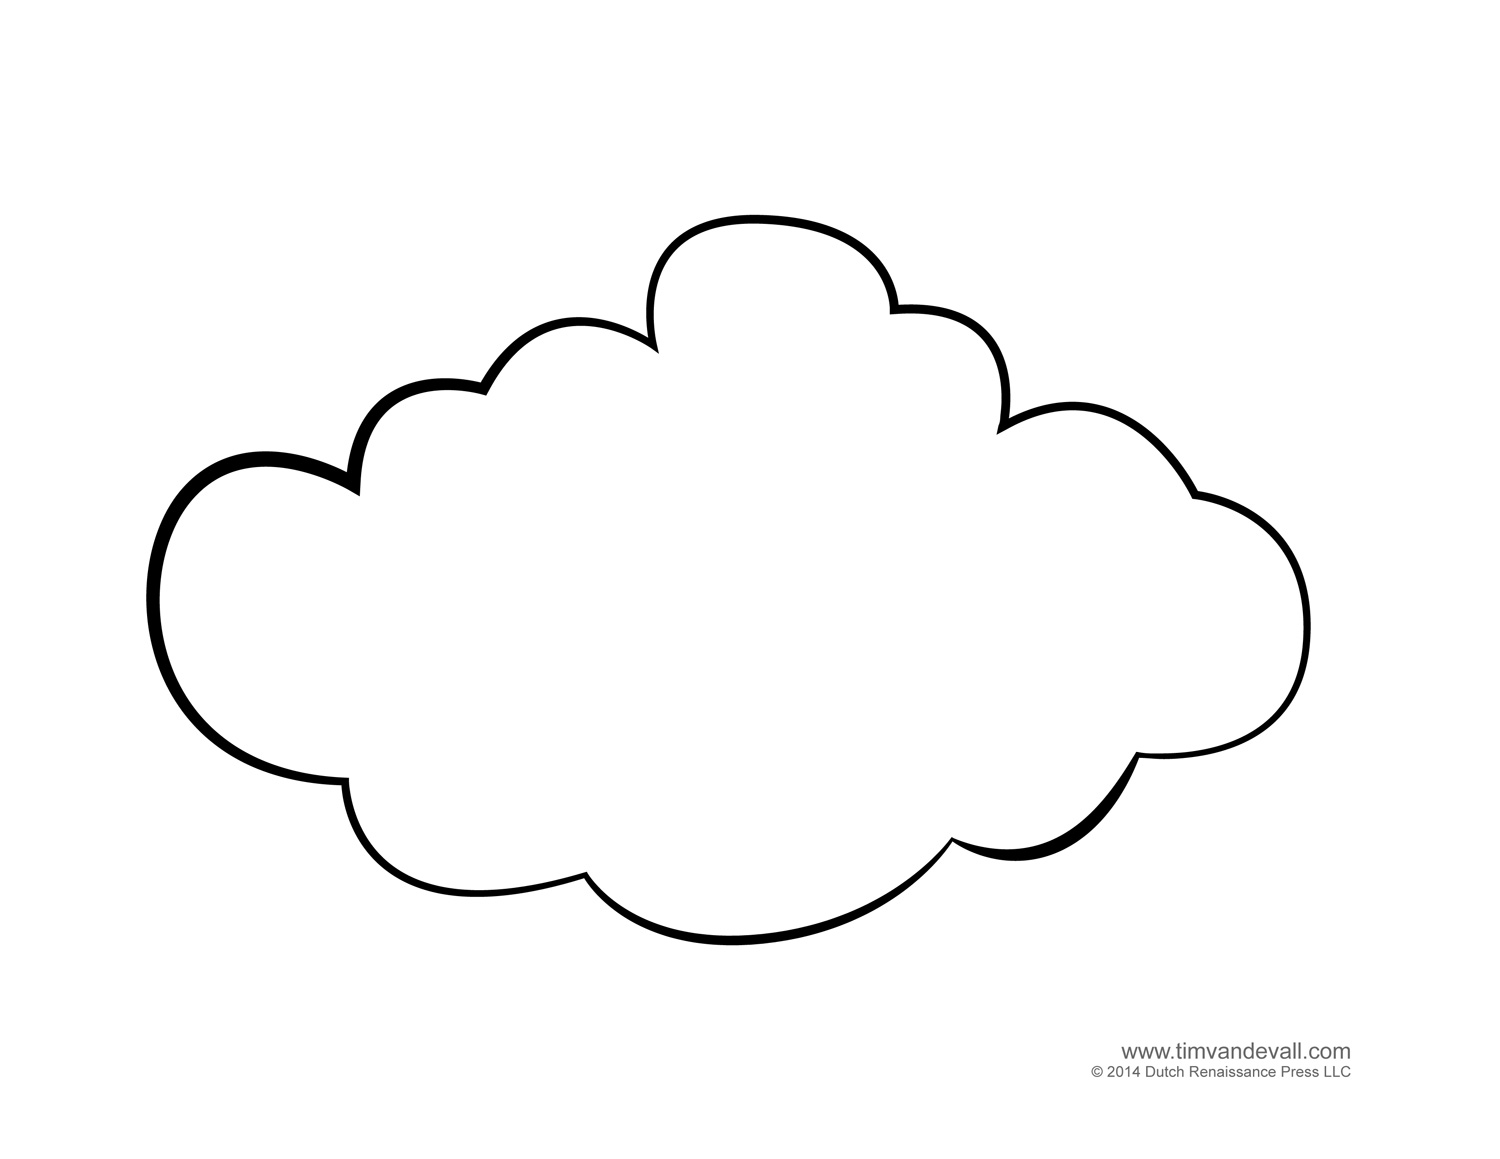 Free Coloring Pages Of Clouds, Download Free Clip Art, Free Clip ... | 1159x1500